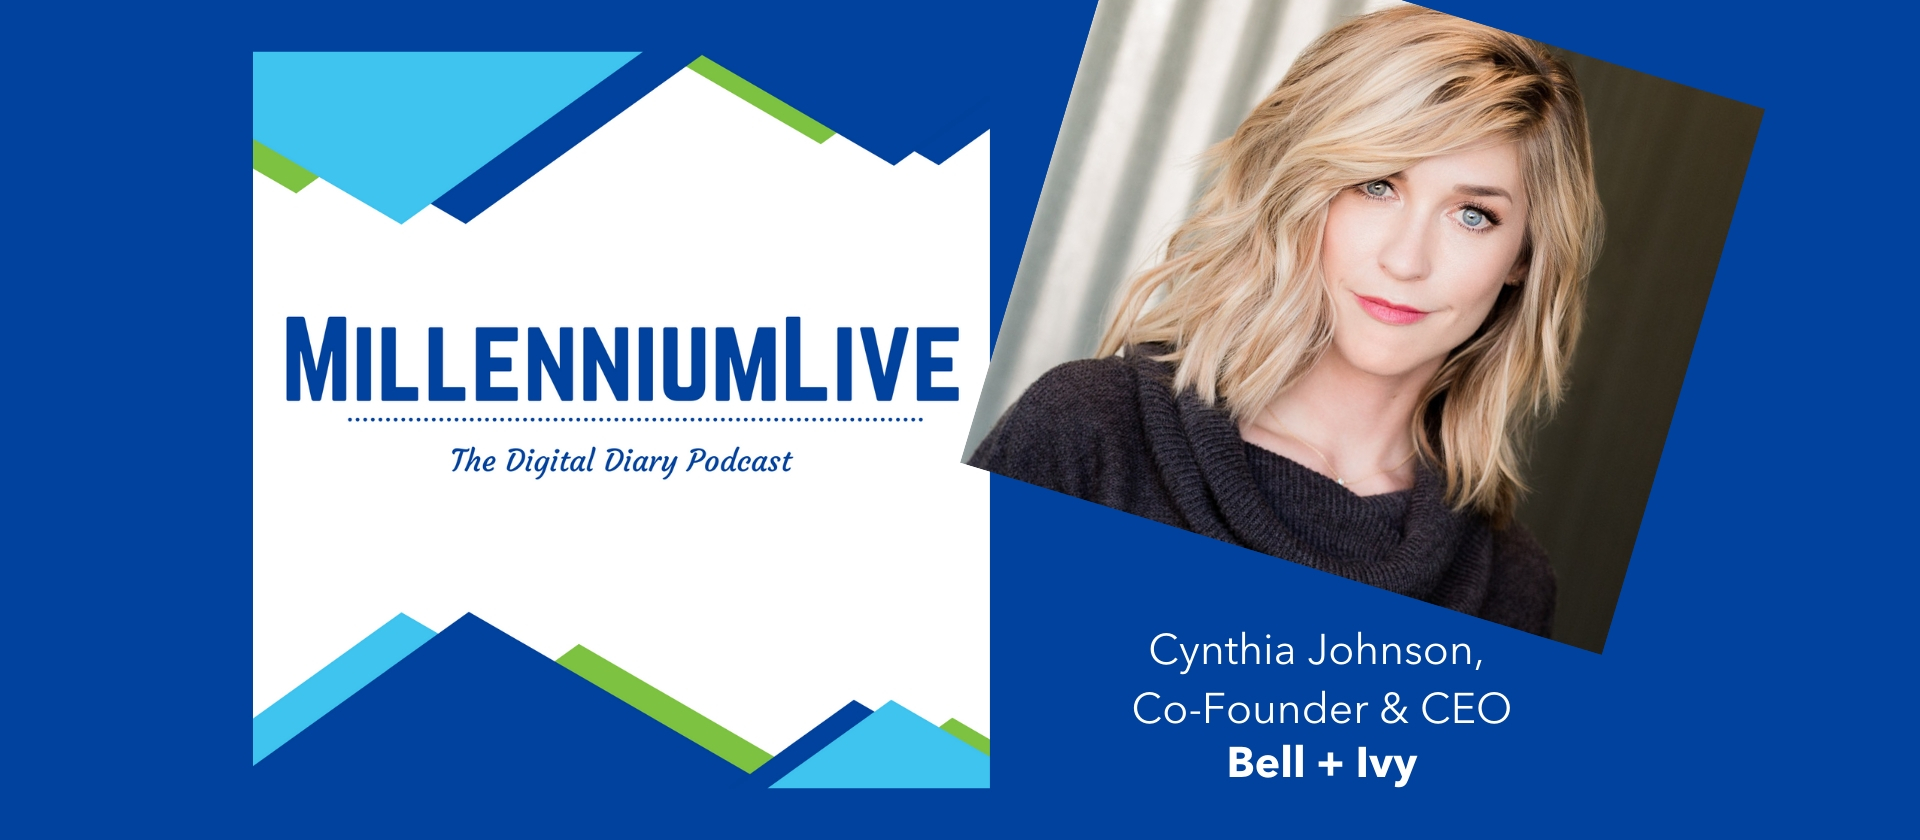 Podcast Poster of Cynthia Johnson